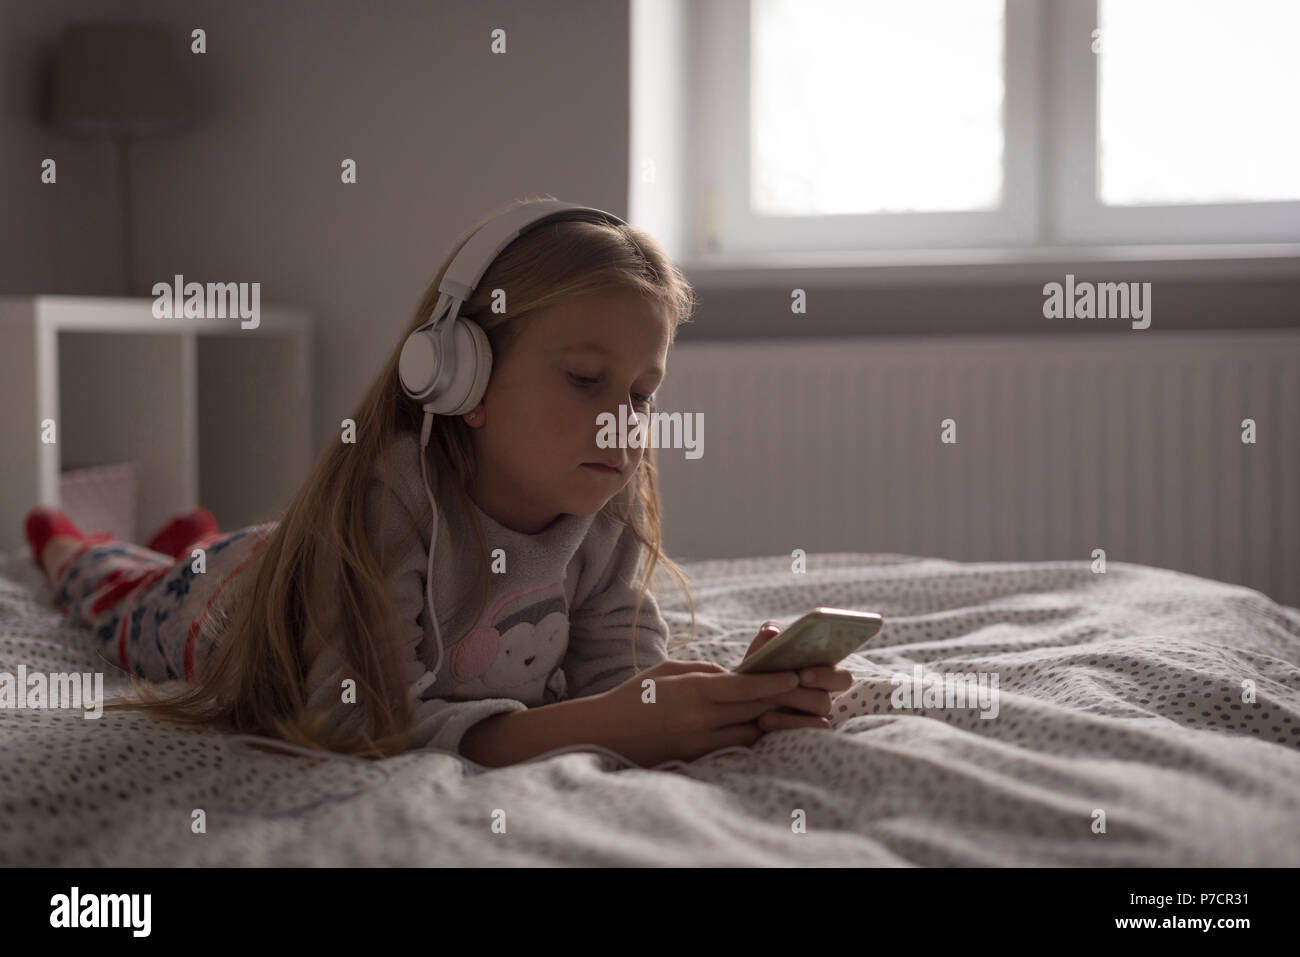 Girl listening music on mobile phone with headphones in bedroom - Stock Image